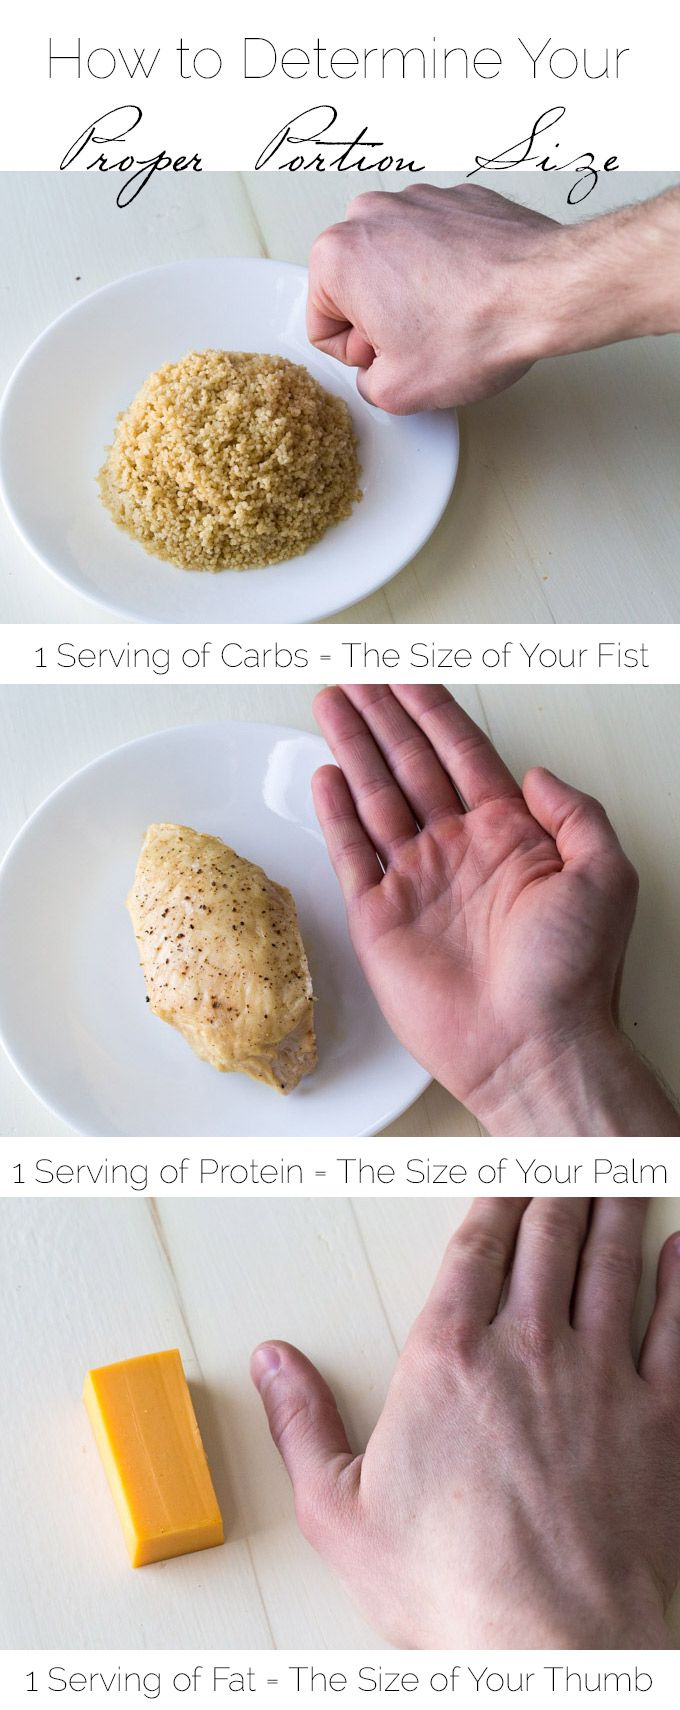 Easy Ways to Learn Portion Control | Foodfaithfitness.com | @FoodFaithFit